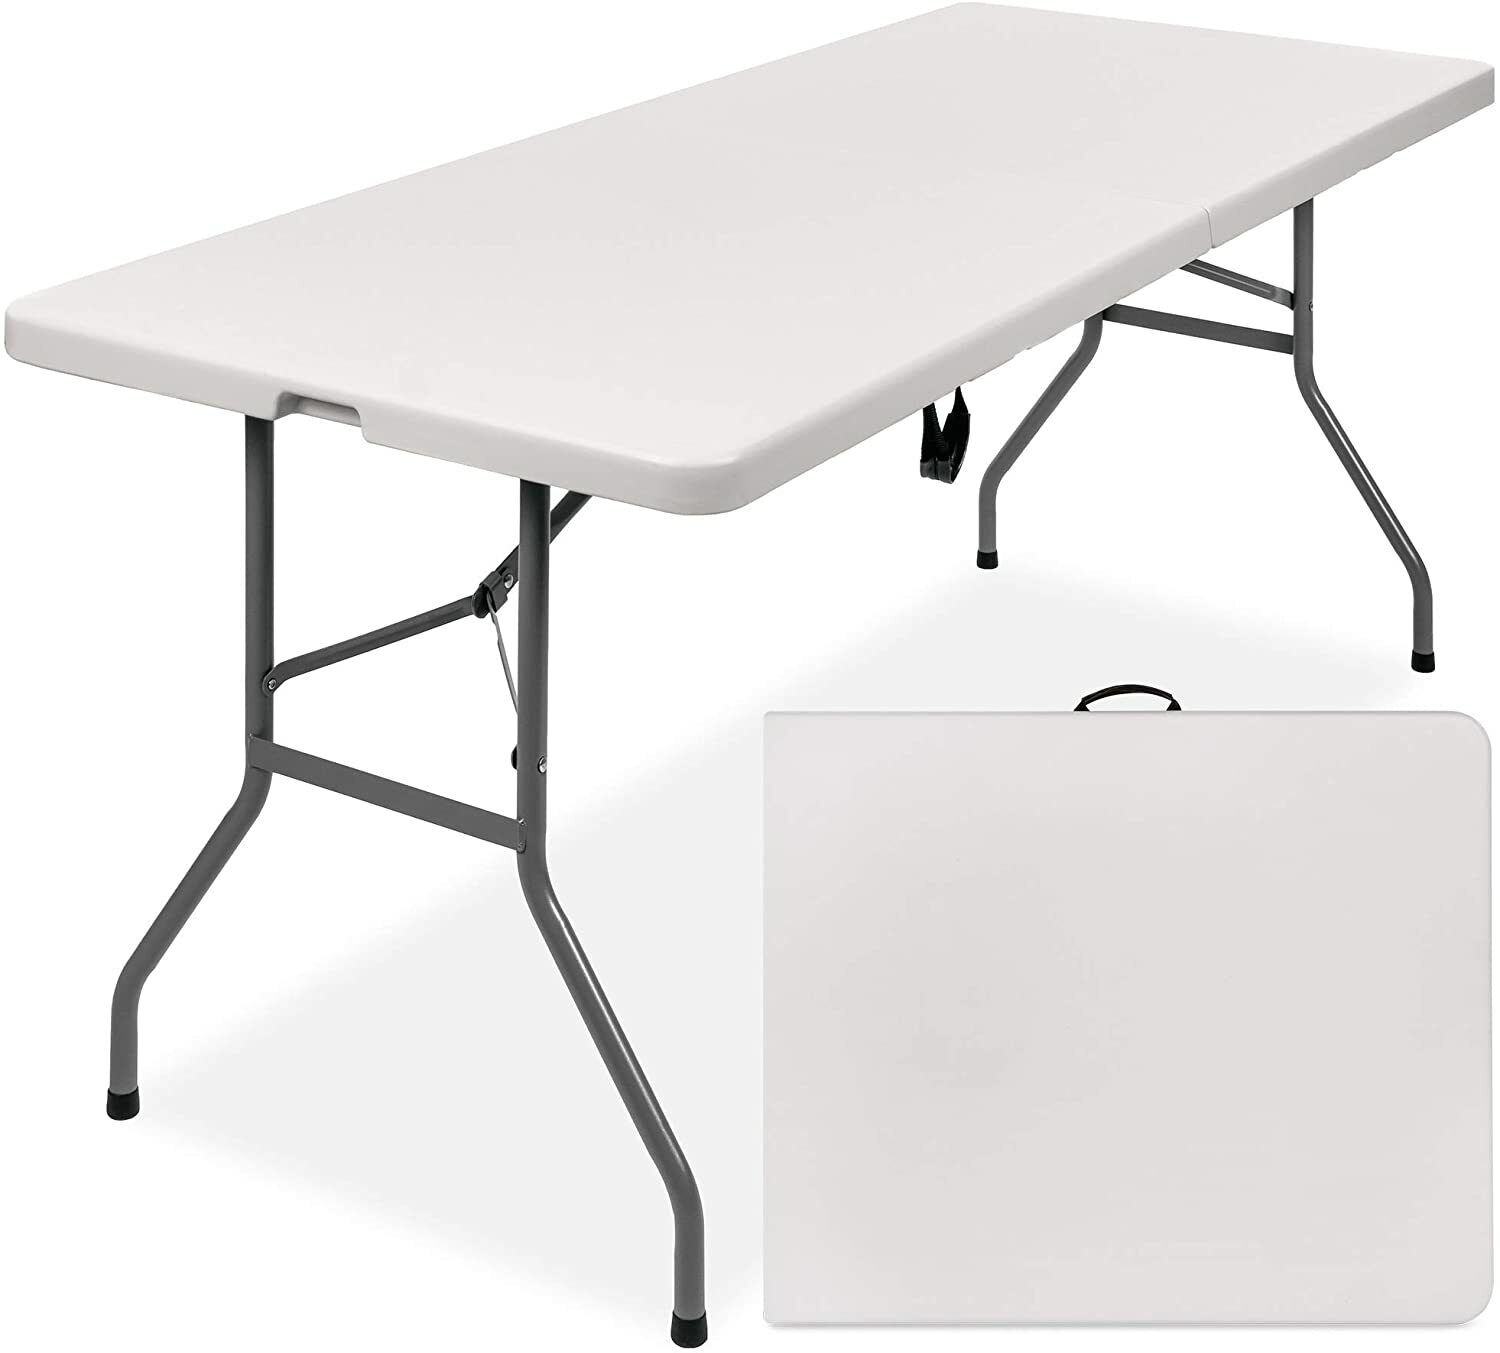 Best Choice Products 6ft Portable Folding Plastic Dining Tab